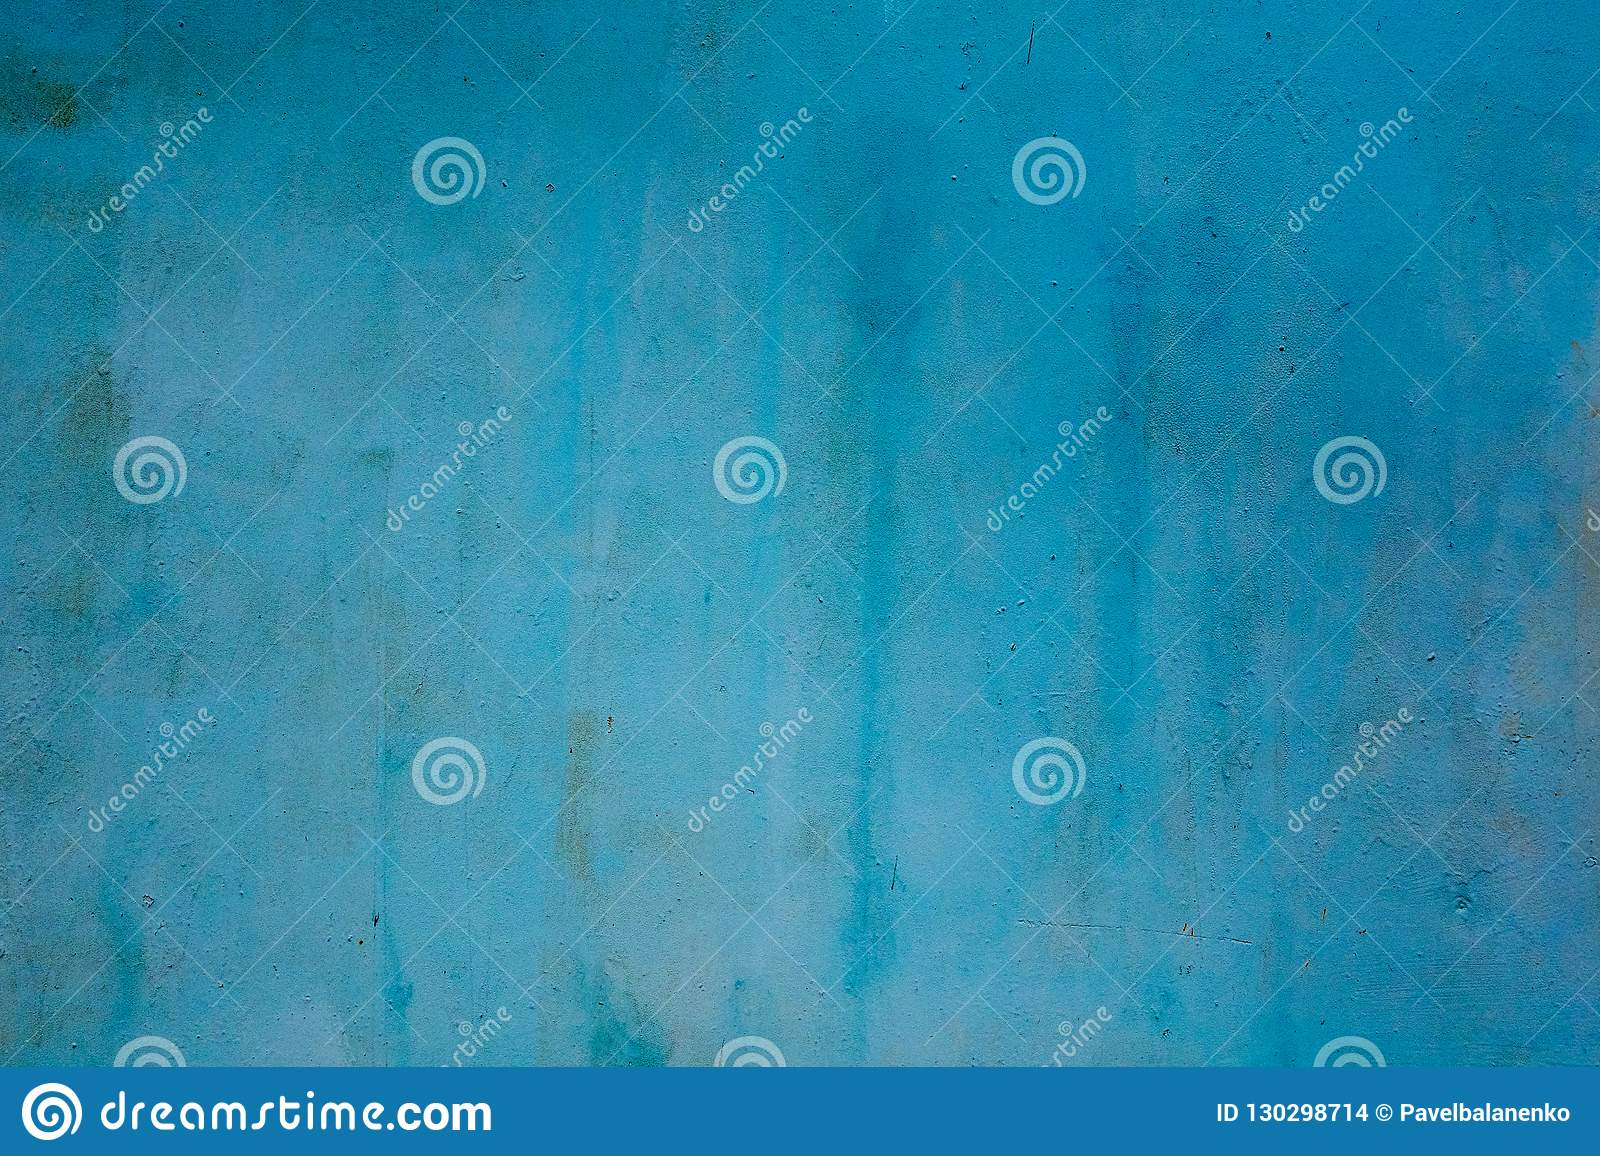 023566210c91d Solid Background Stock Images - Download 172